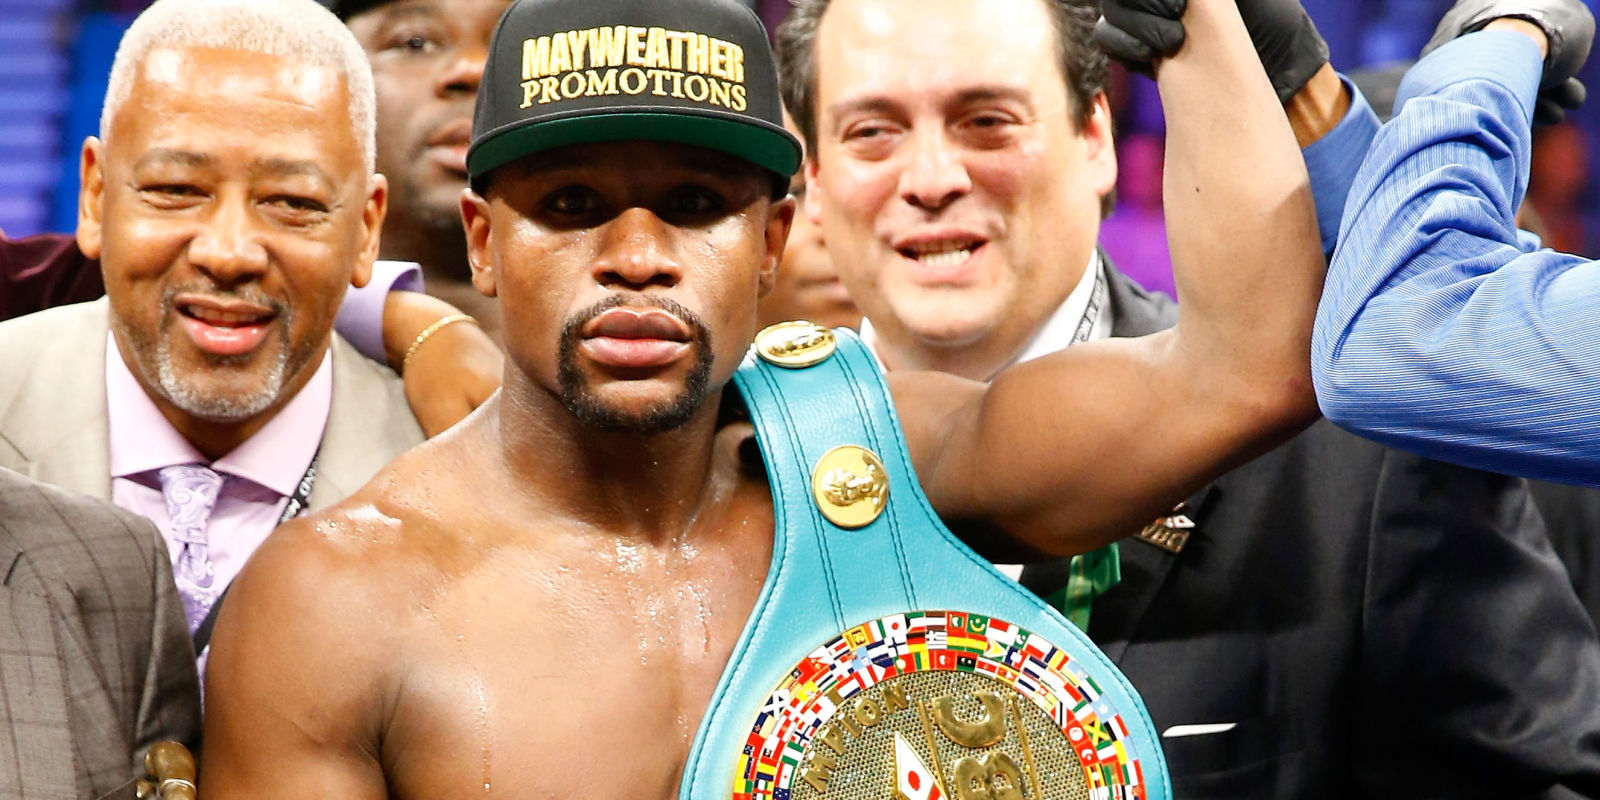 floyd mayweather essay Floyd mayweather jr was born on february 24, 1977 in grand rapids, michigan his father, floyd mayweather sr was a former boxer who fought in the welterweight division.